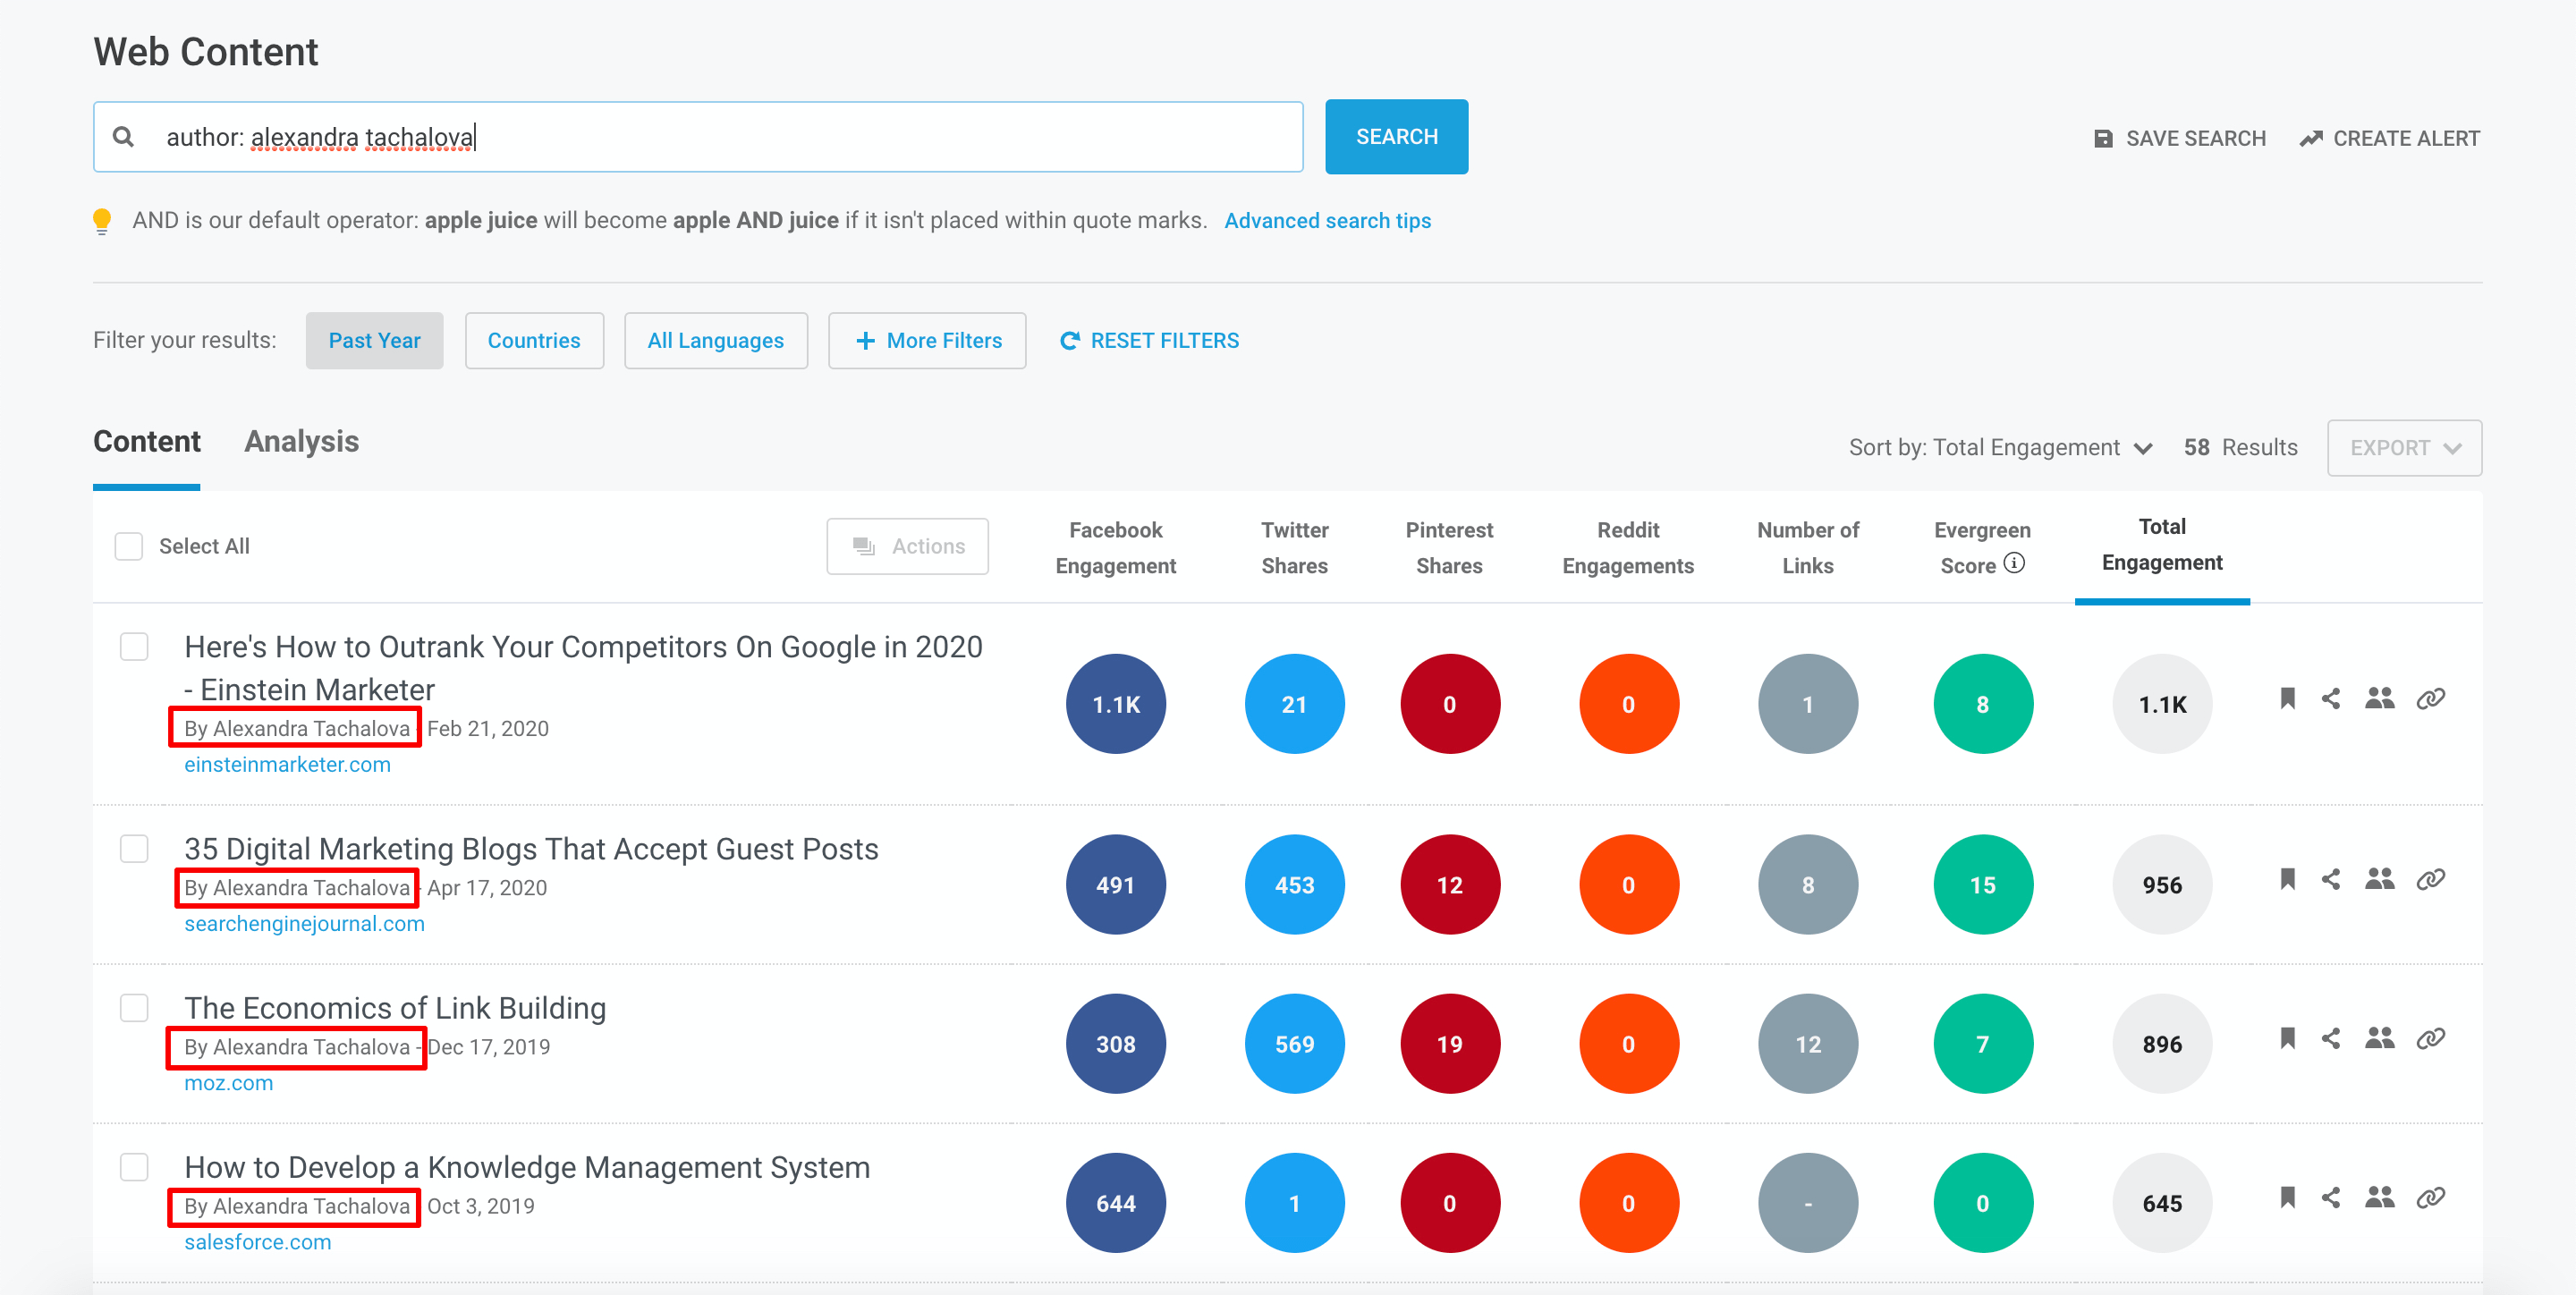 Search by author in BuzzSumo